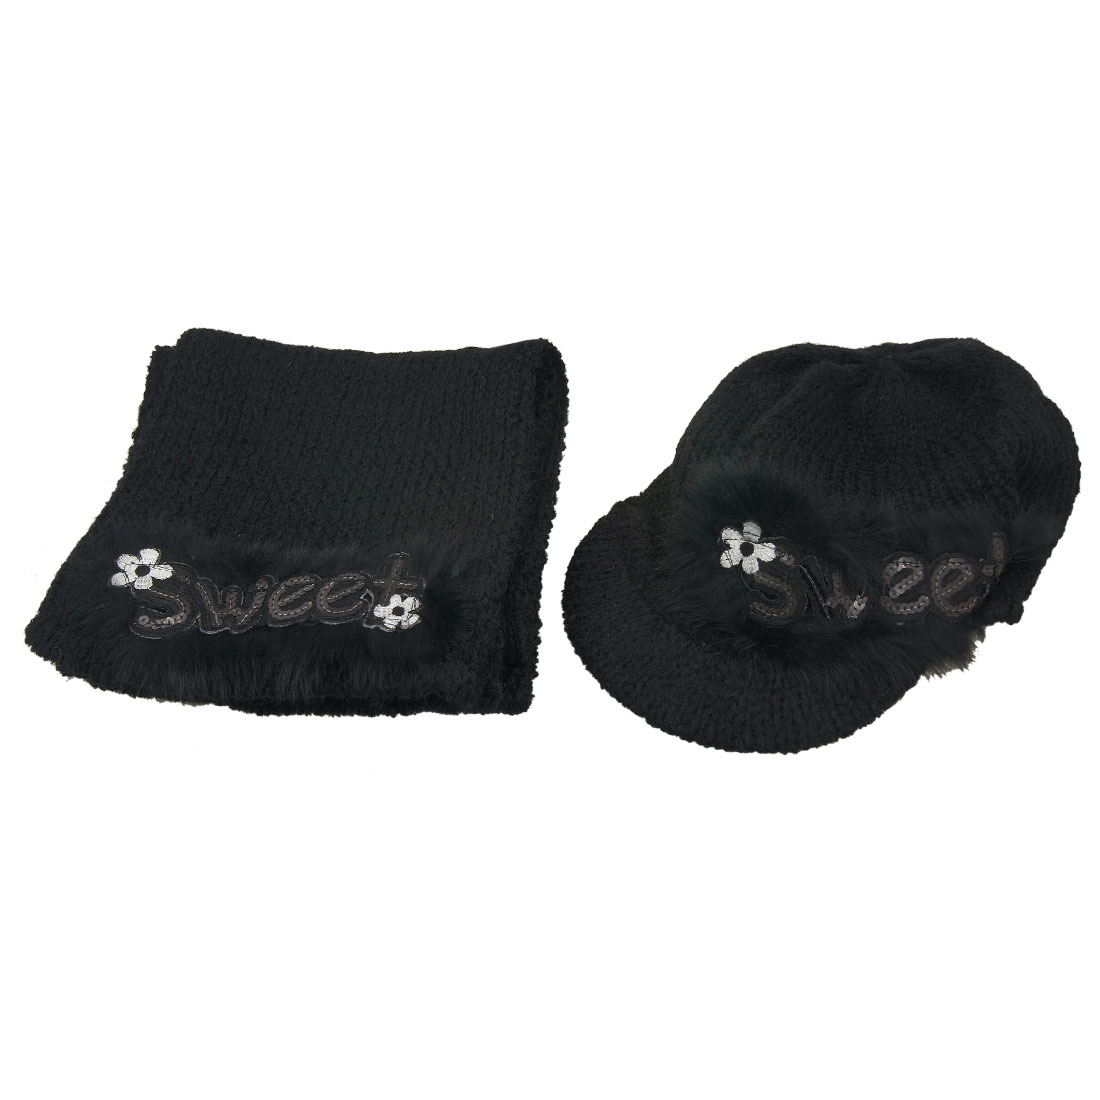 Sequin Letters Printed Brim Hat + Rectangle Scarf Black for Lady